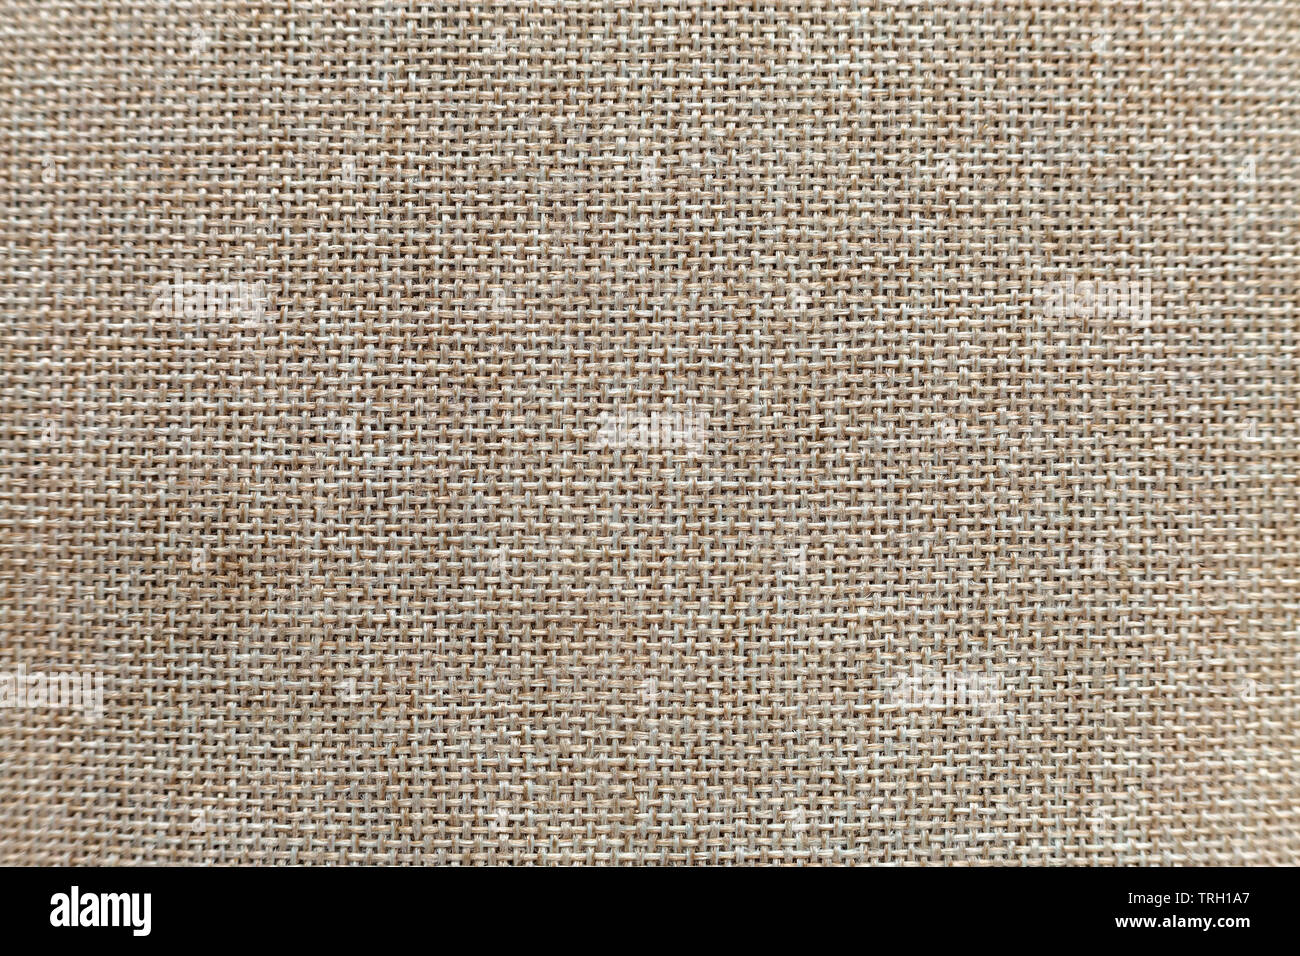 Gray beige linen canvas surface background. Sackcloth design, ecological cotton textile, fashionable woven flex burlap. - Stock Image